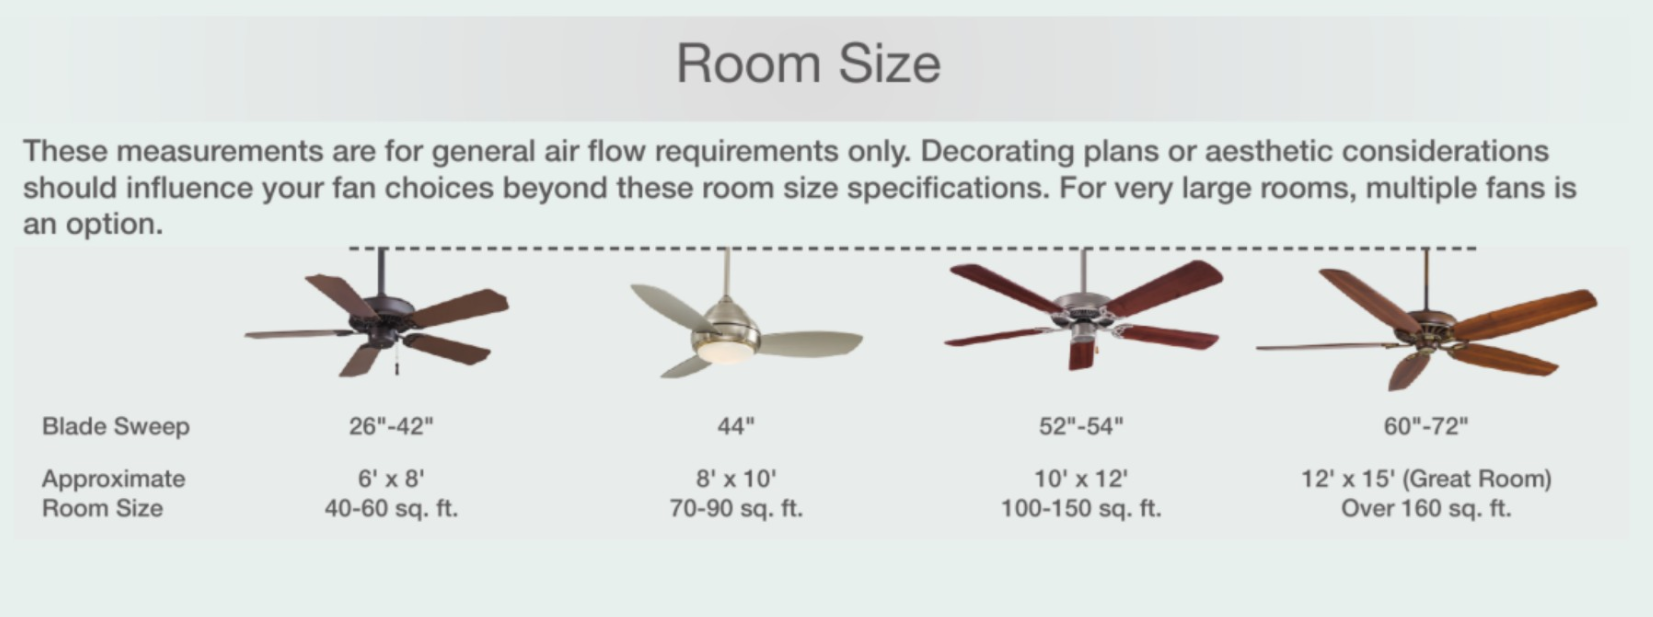 Minka Aire's Room size fan guide